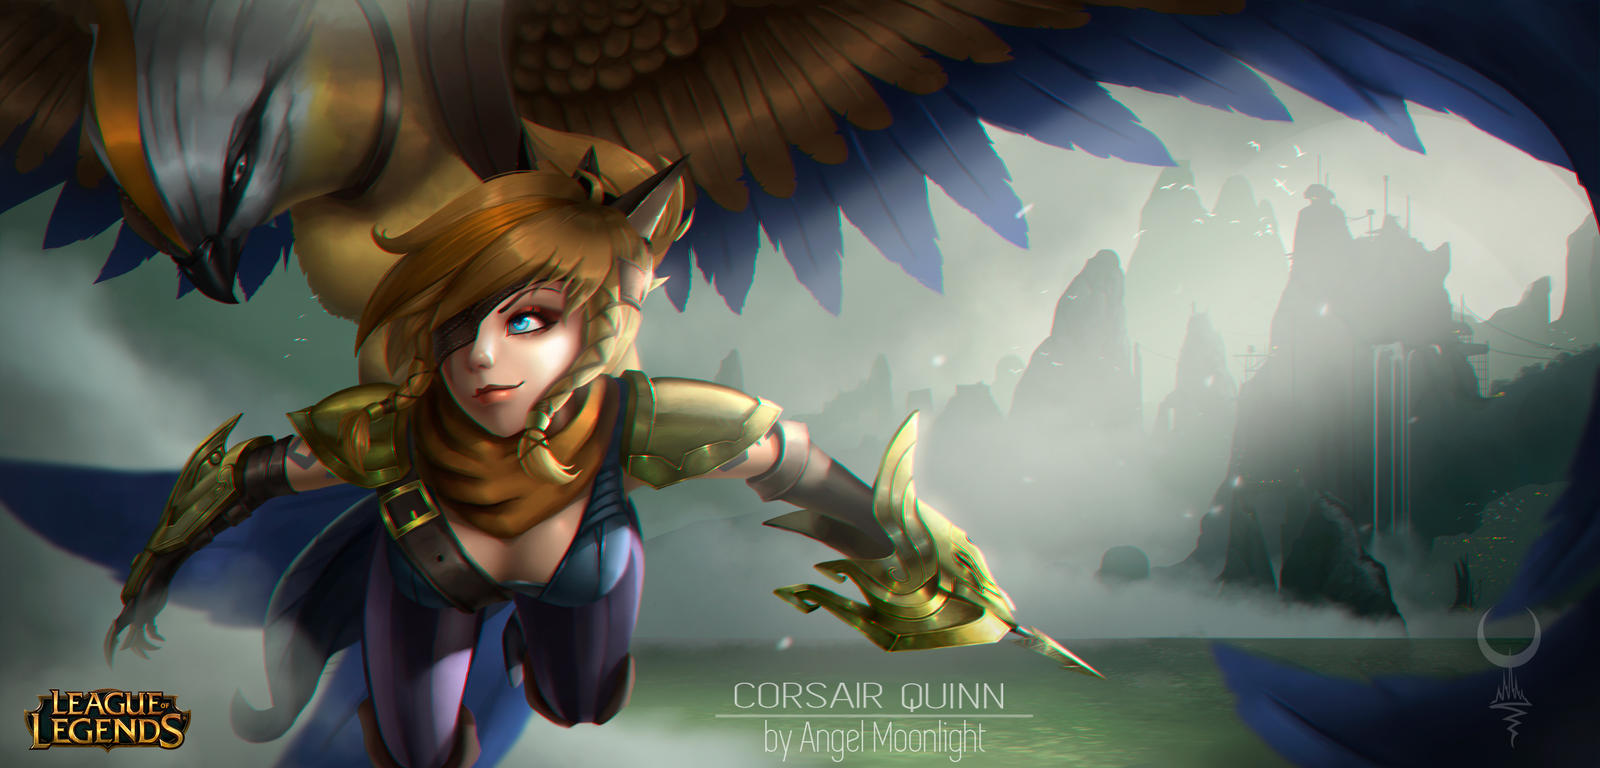 quinn league of legends - photo #15